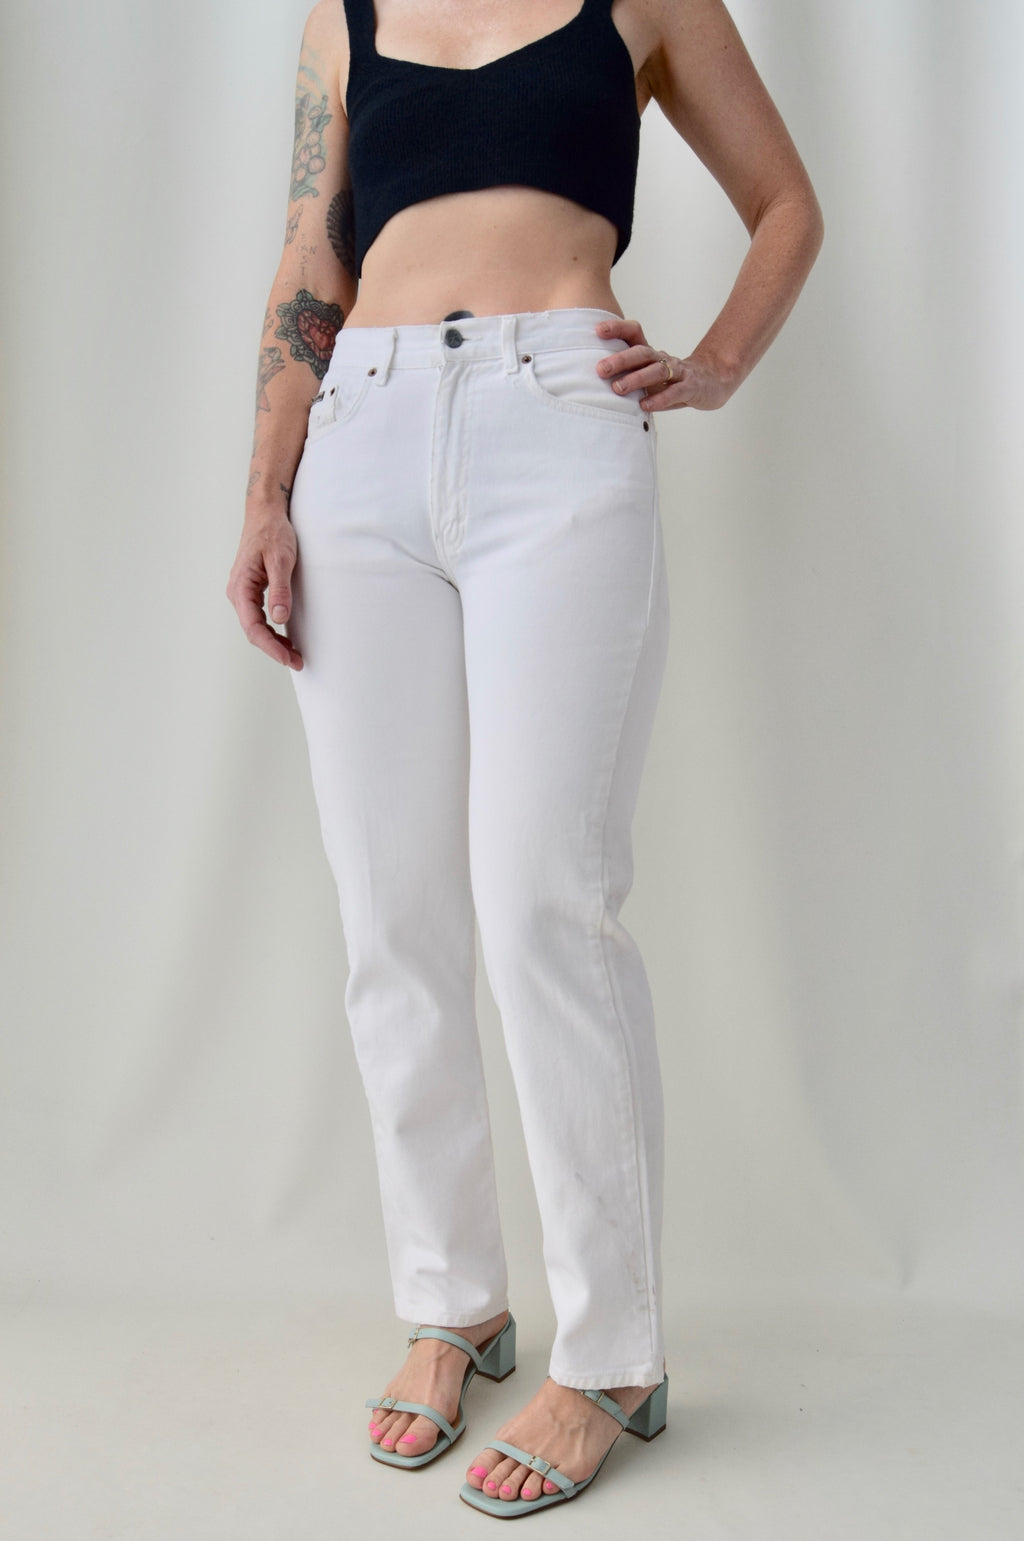 Tattered White CK Jeans